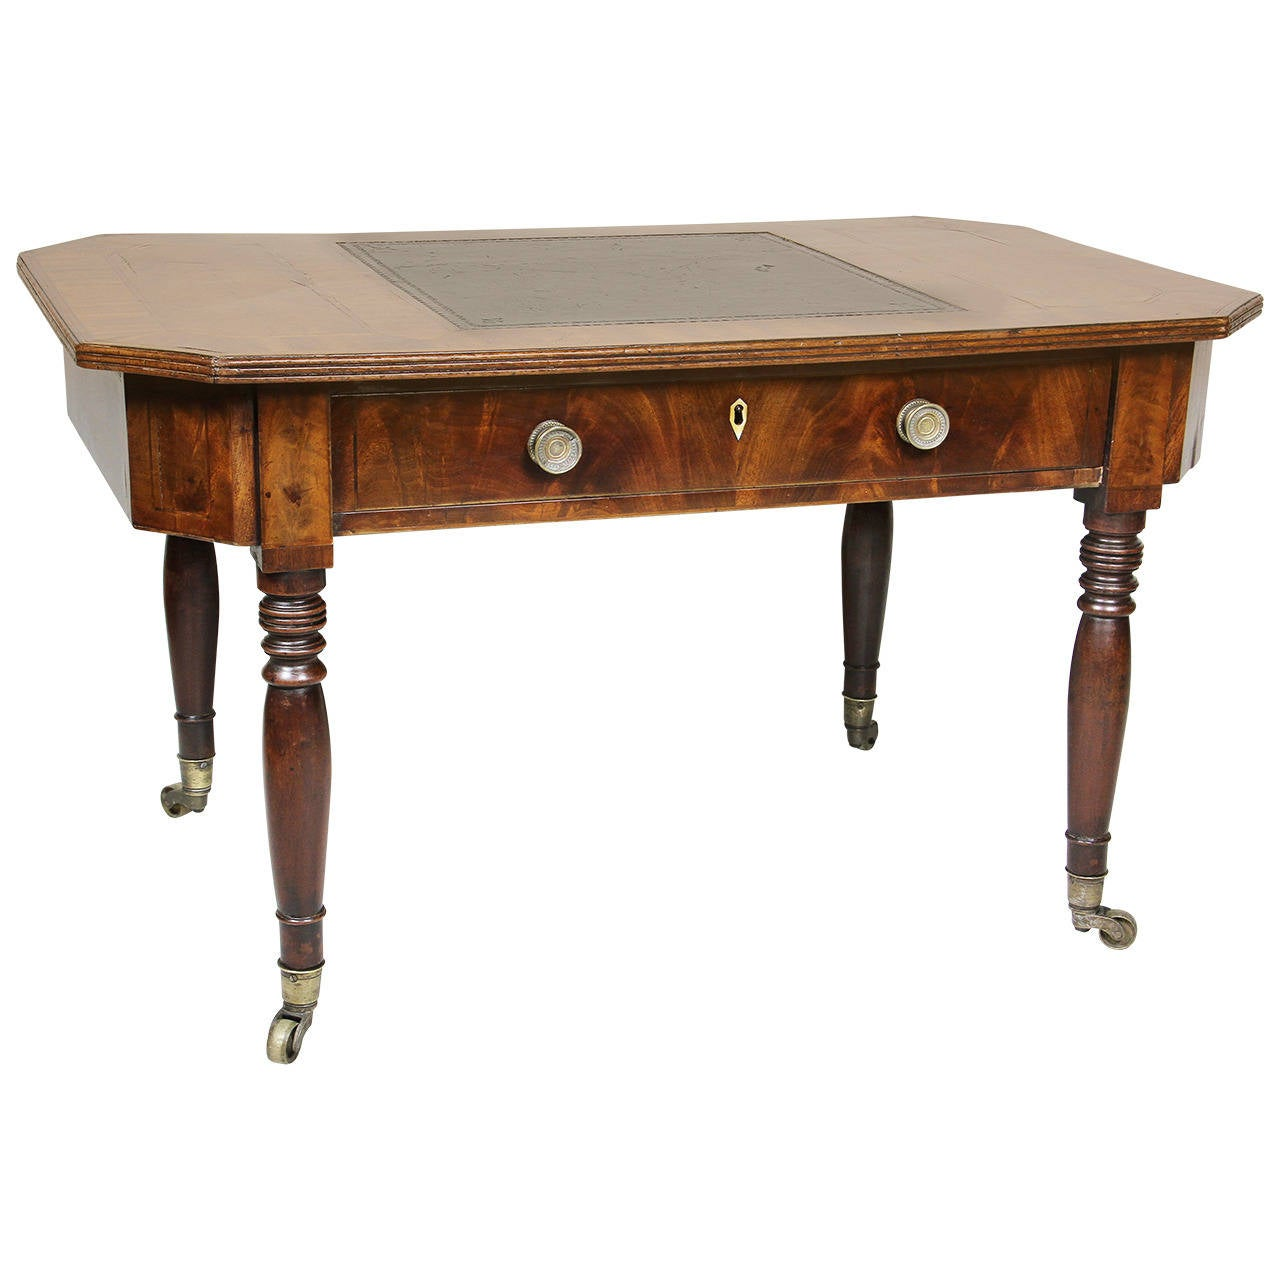 Unusual Regency Miniature Writing Or Coffee Table At 1stdibs